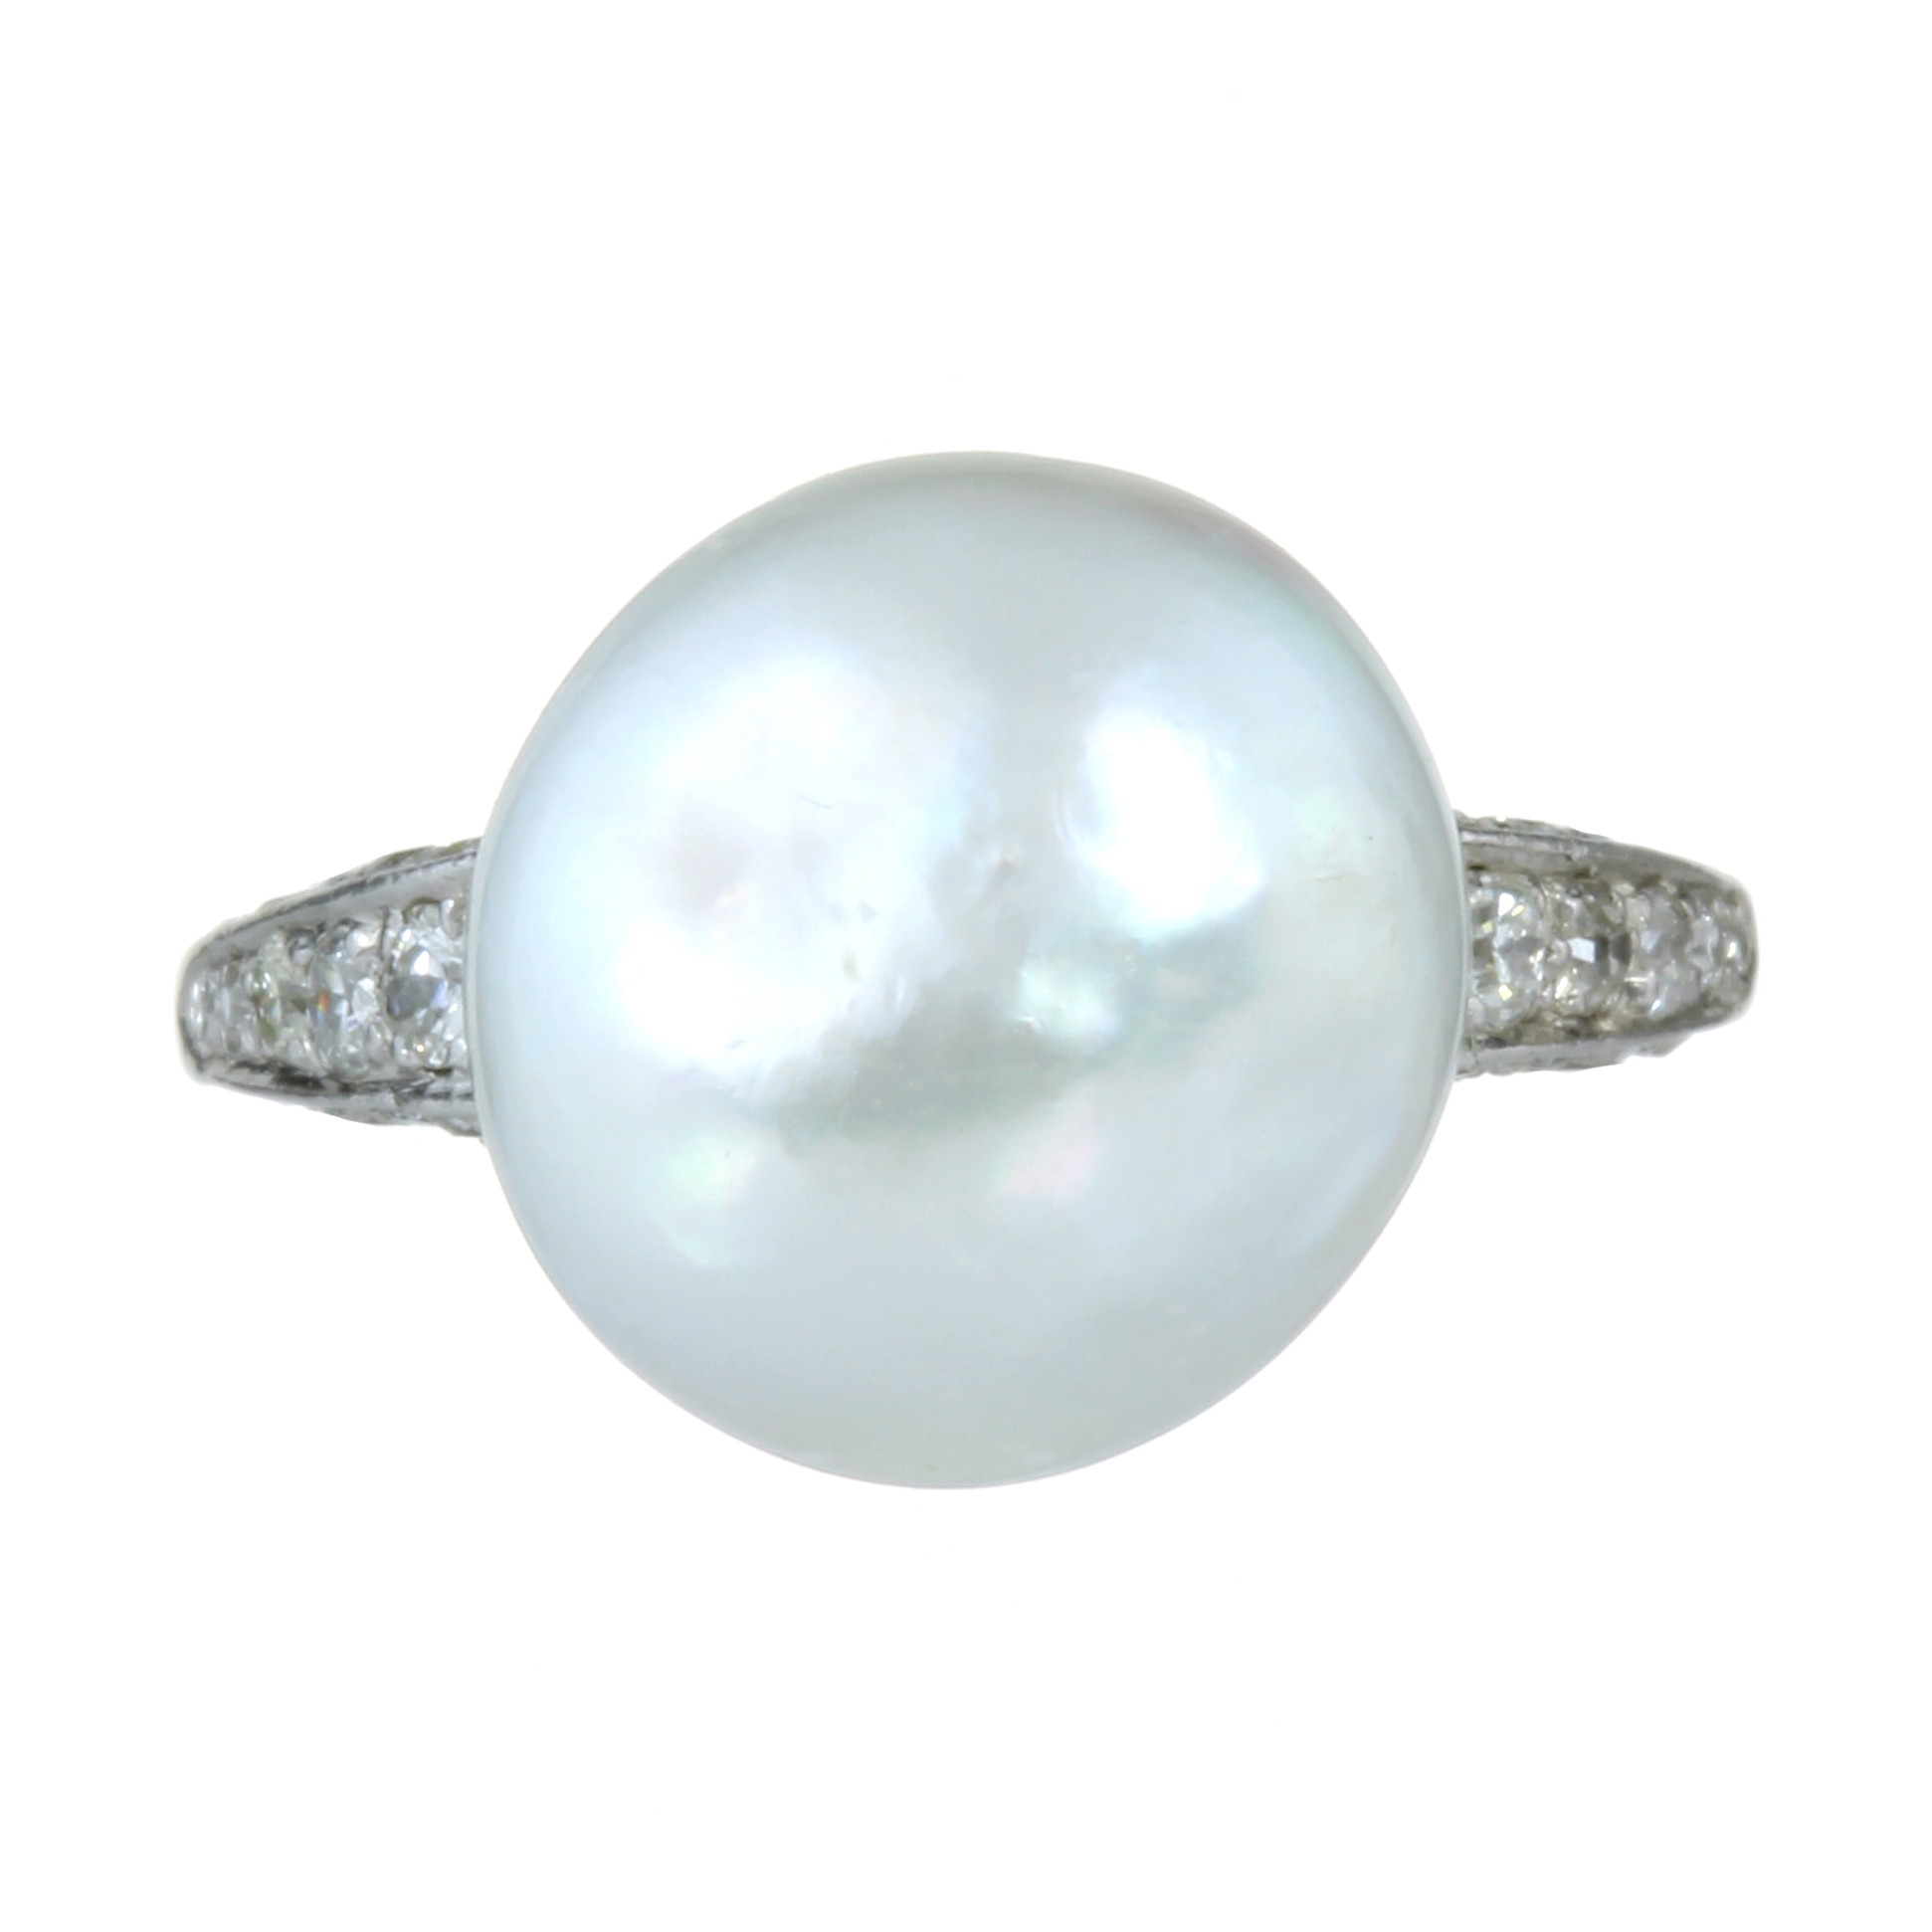 Los 42 - A 12.7MM NATURAL SALTWATER PEARL AND DIAMOND RING in white gold or platinum set with a central pearl